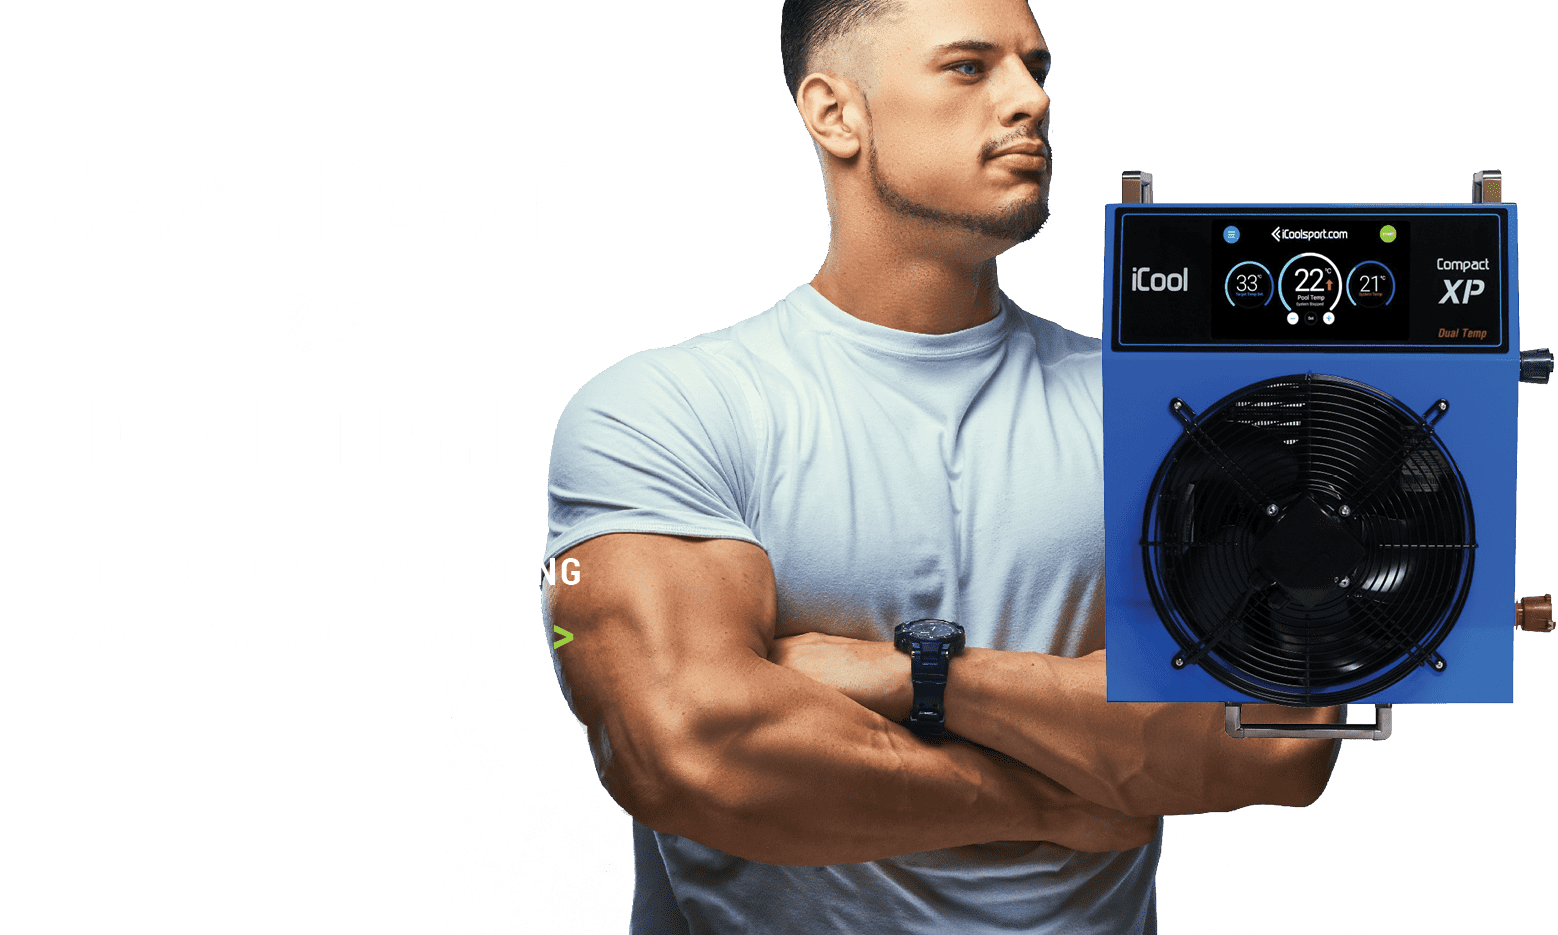 Pride on the Line Compact Cool XP Dual Temp Cooler Unit